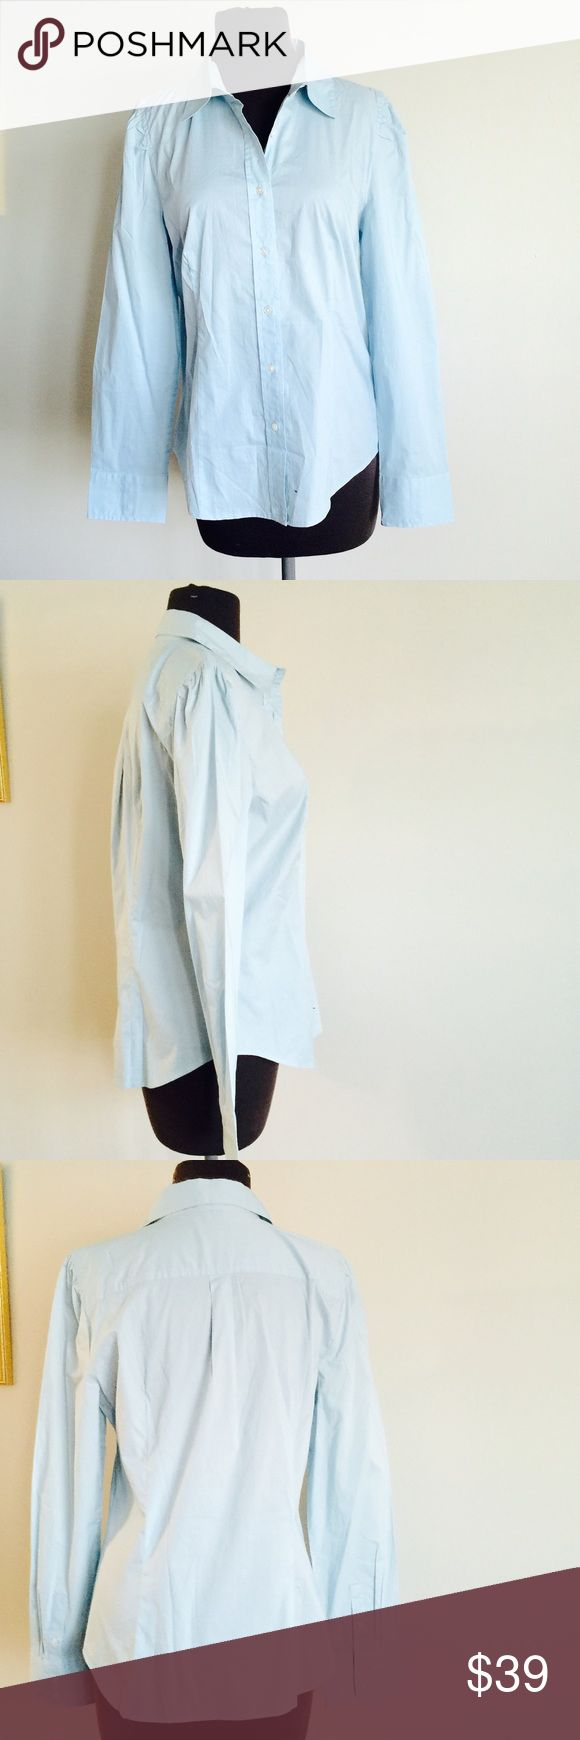 ❗️Talbots Stretch Sky Blue Botton Down MSRP $98 ❗️Talbots Stretch Sky Blue Button Down. In great condition retails $98. Size 12. Make an offer! I consider all reasonable offers on items & give great bundle deals! Spring cleanout sale--all must go! ;-) Talbots Tops Button Down Shirts